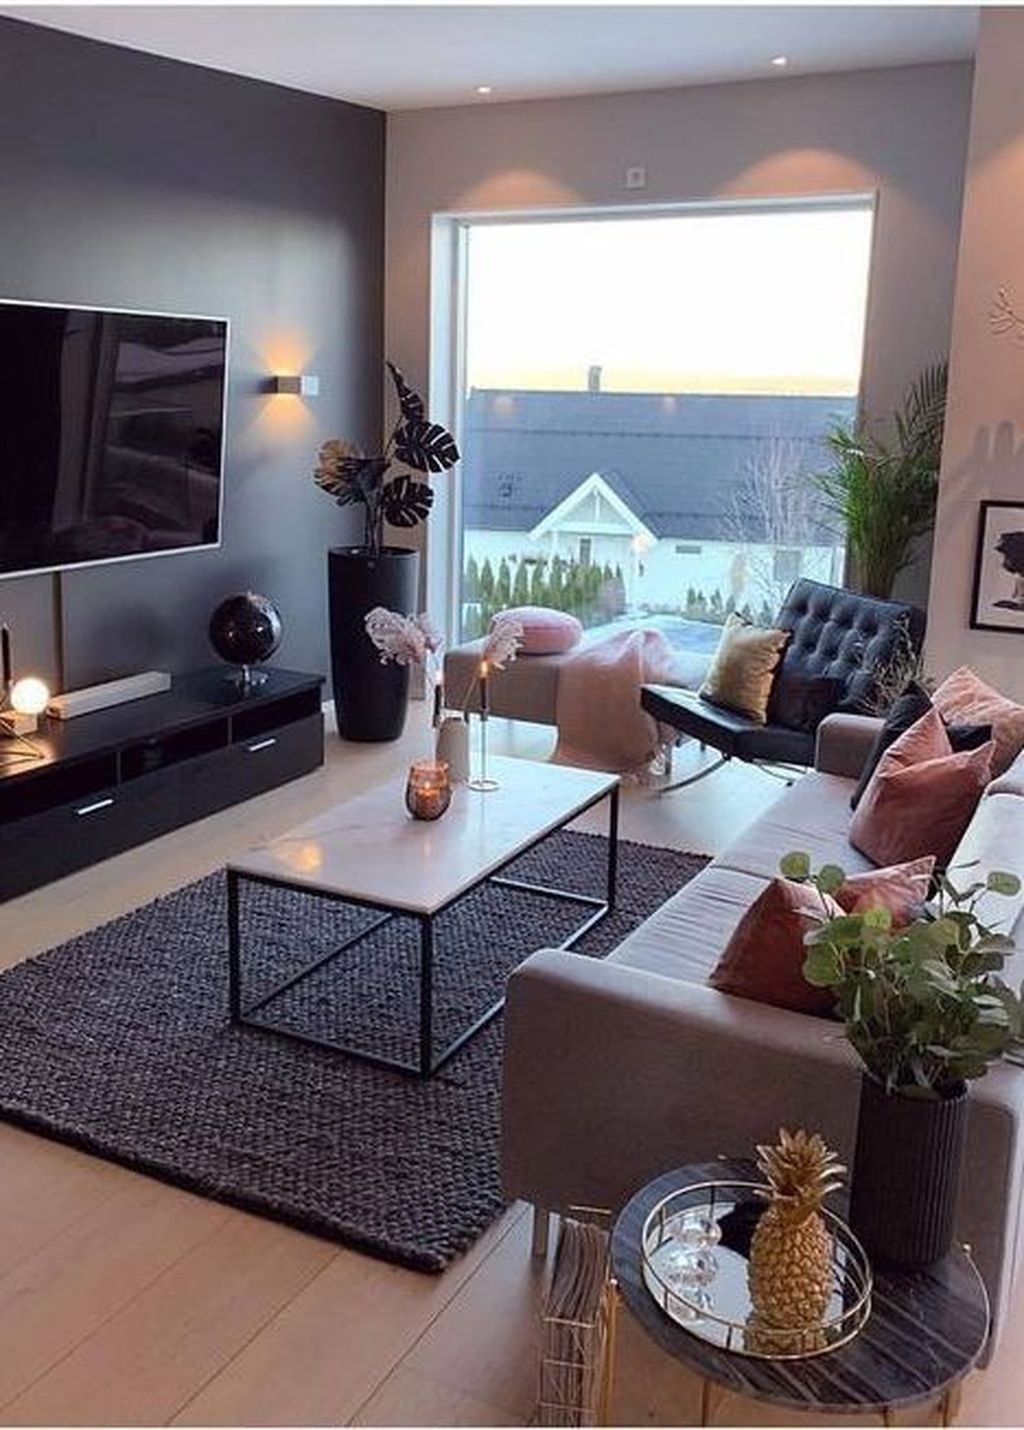 35 Classy Small Living Room Designs Ideas For Best Inspiration In